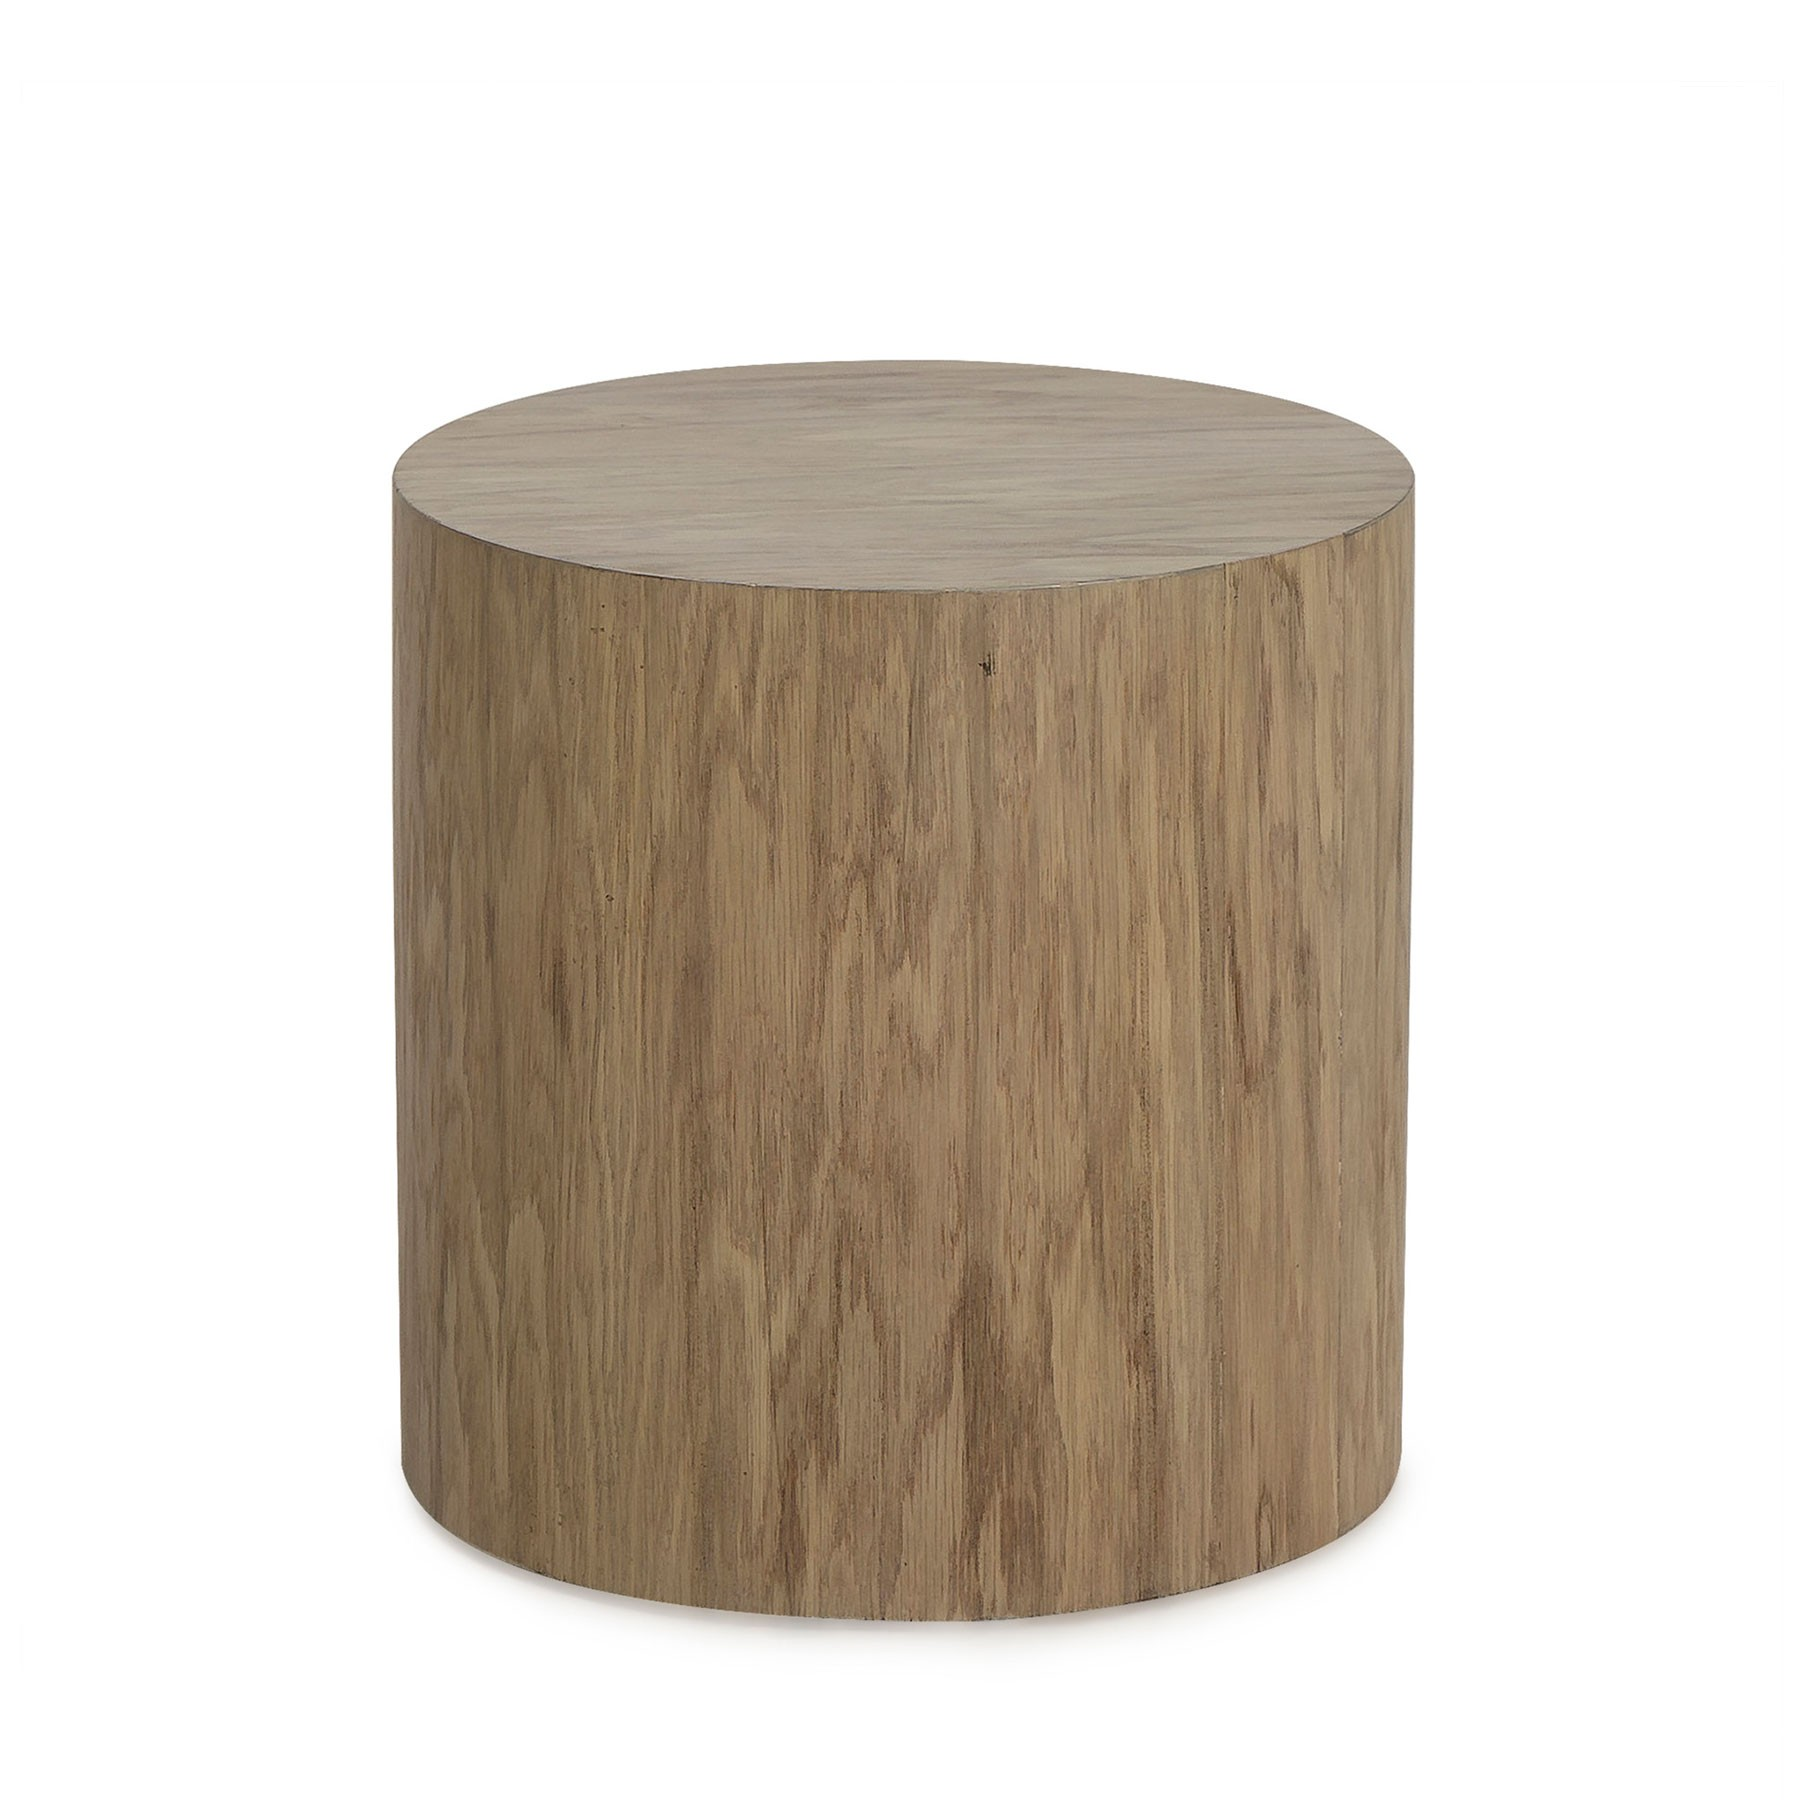 morgan accent table round oak hoppen resource decor outdoor umbrella stand weights small bedside lamps glass for coffee cast metal nate berkus diy desk plans tablecloth patio end